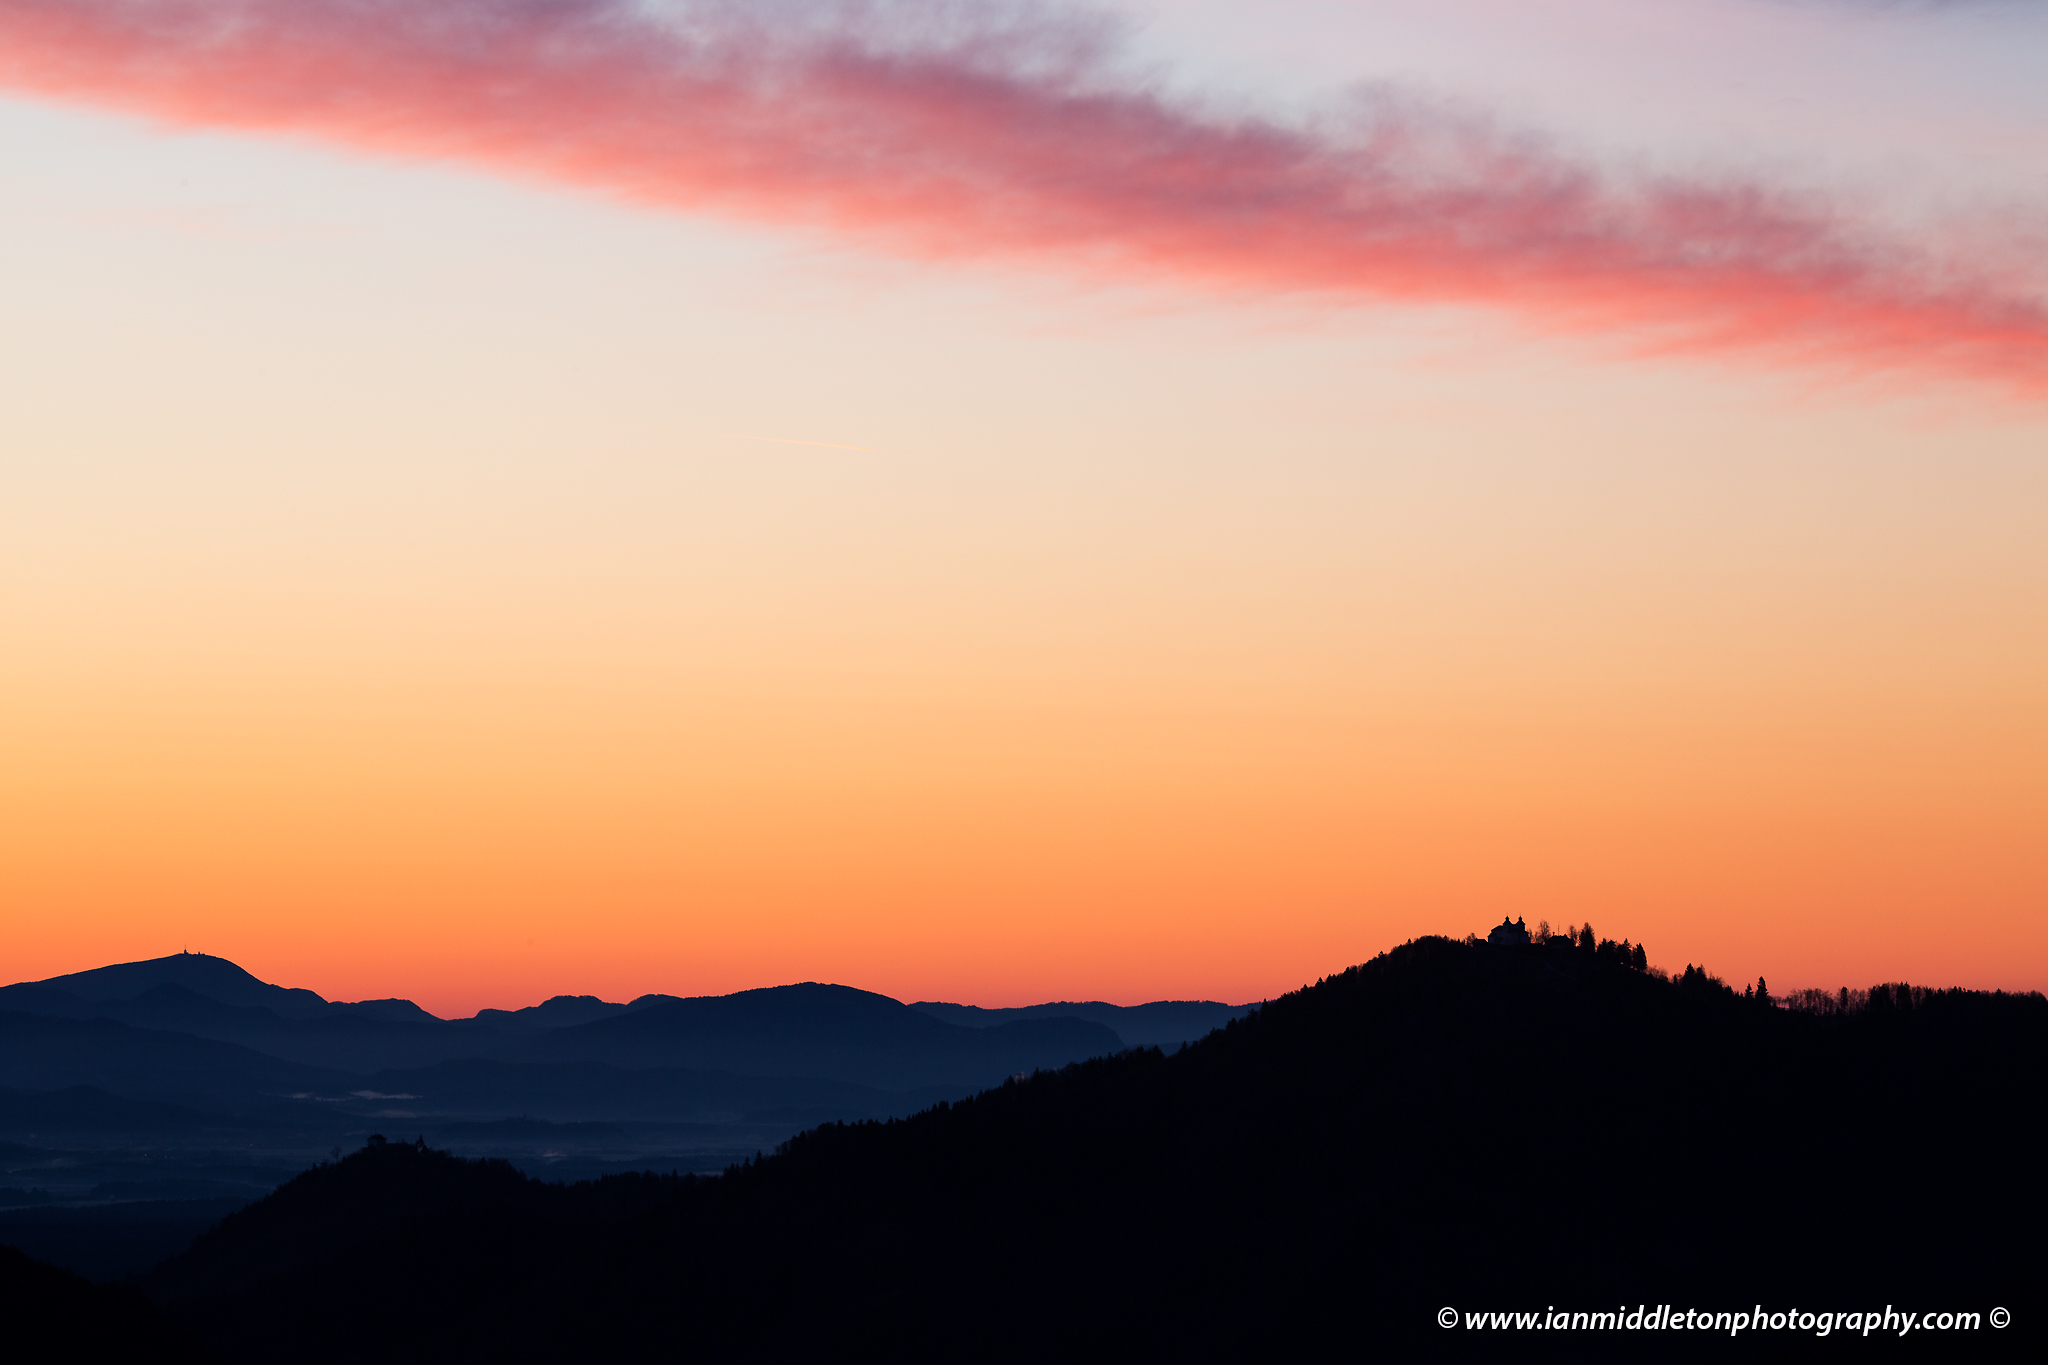 Sunrise view across to the church of Sv Jost above Kranj, Slovenia. Seen from Jamnik.